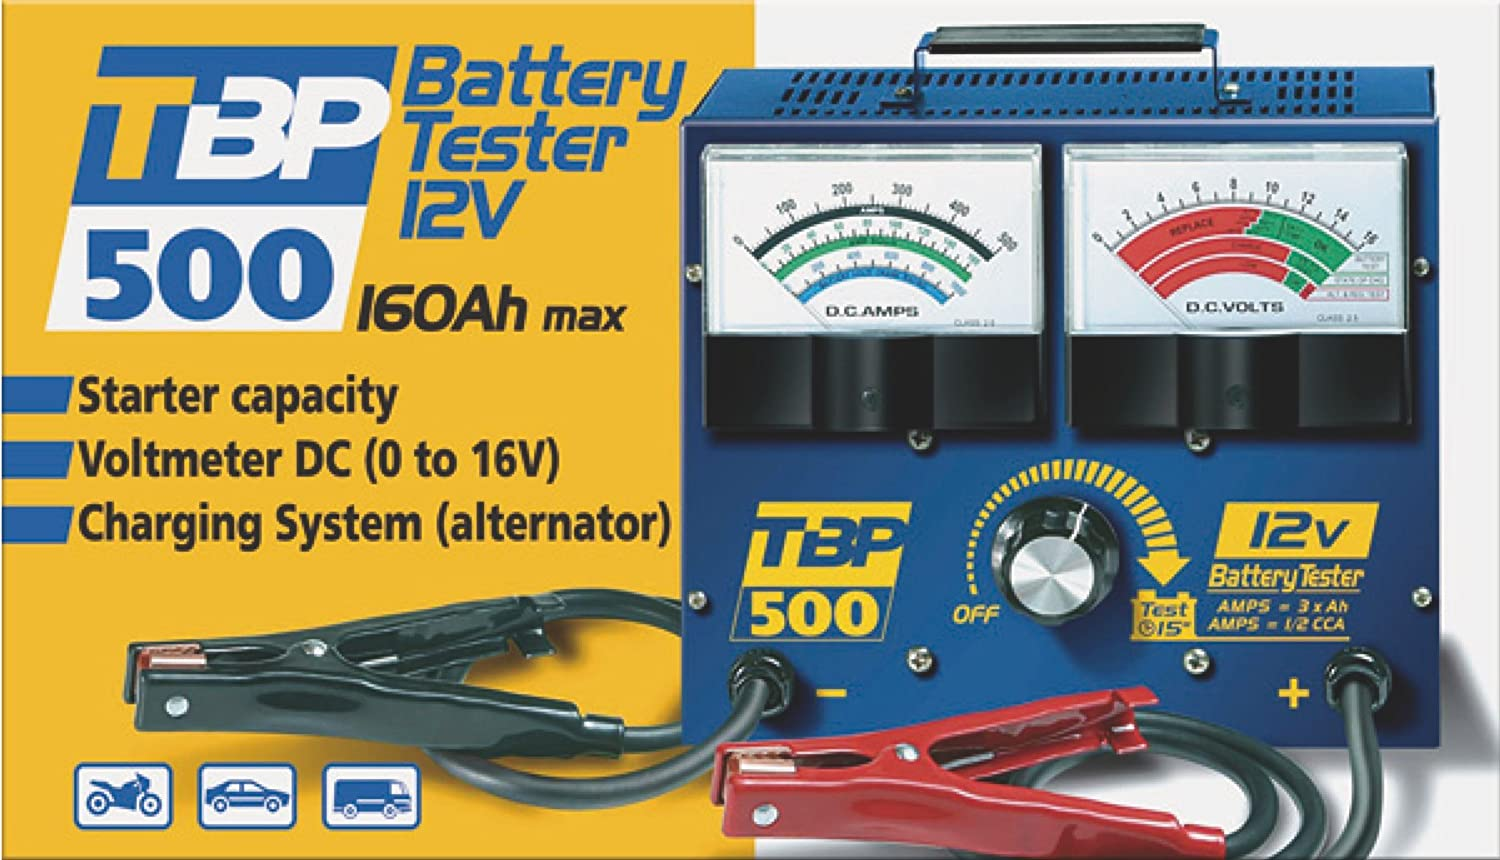 Gys Tbp 500 Car Battery Tester For 12v Lead Acid Batteries Max Silverline Non Contact Ac Voltage Detector 140mm Electrical Diy Tool 160ah Motorbike